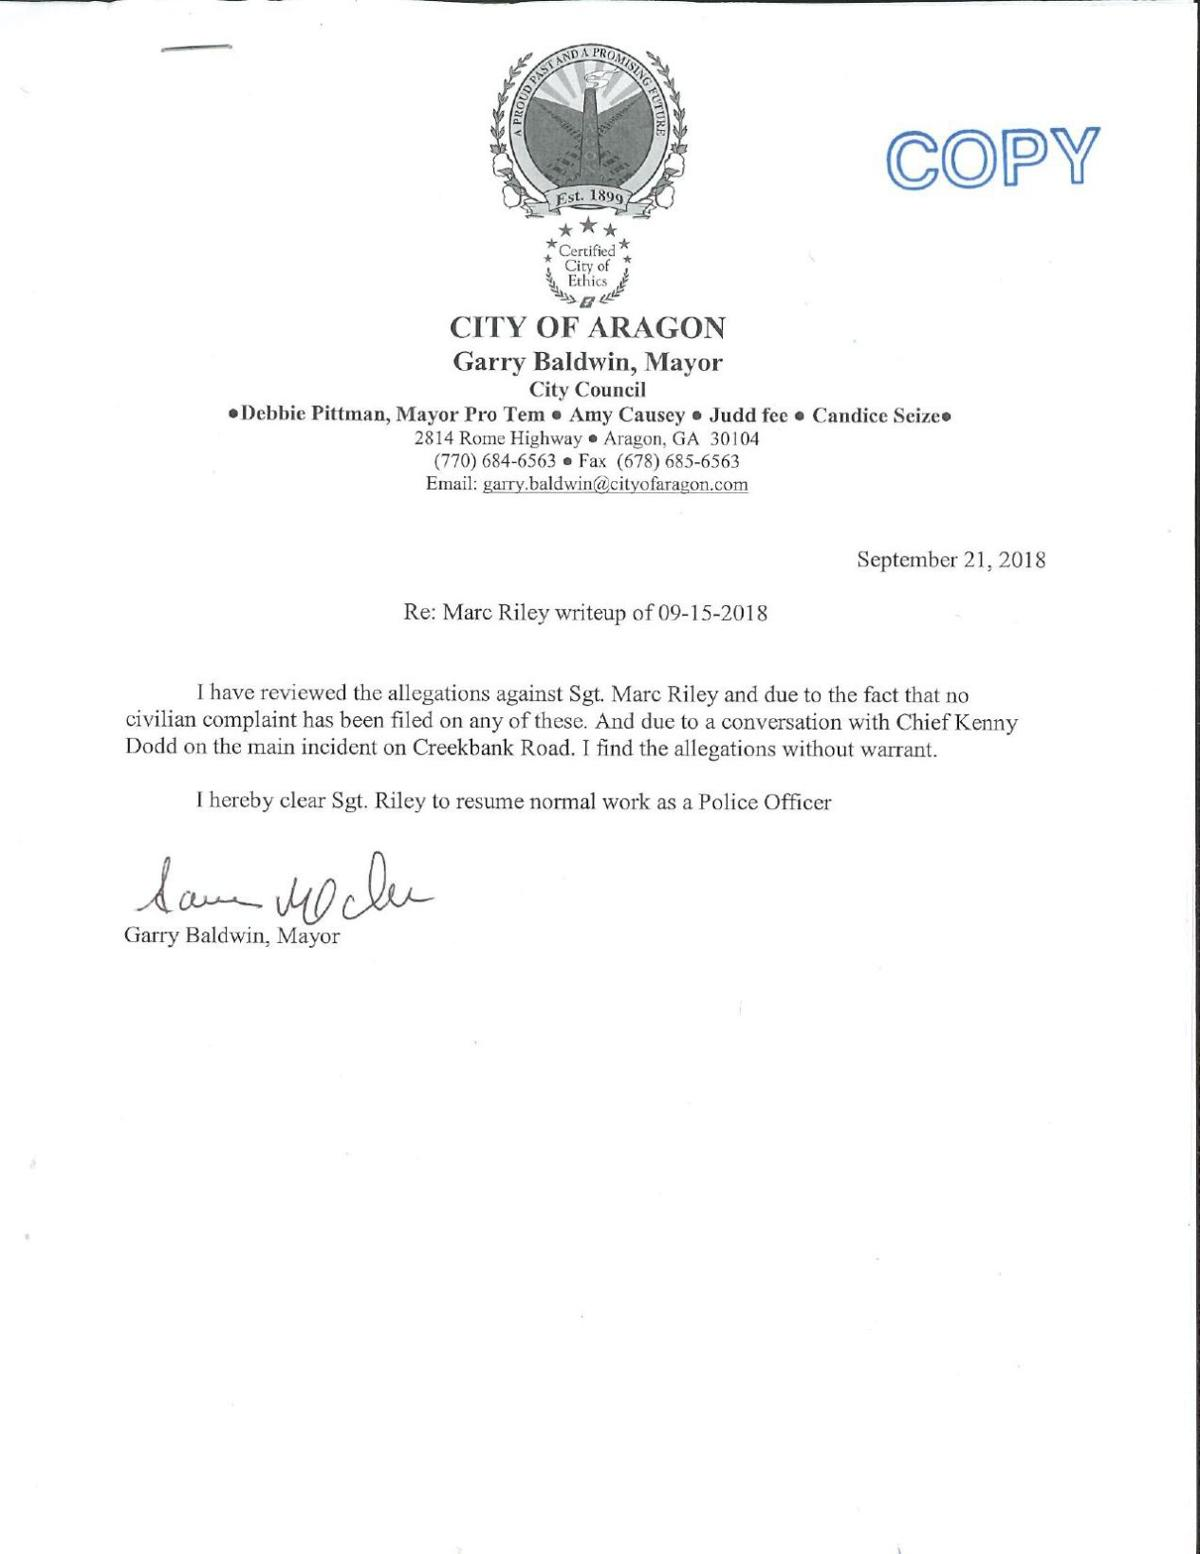 download pdf city of aragon letter from mayor garry baldwin clearing marc riley of allegations